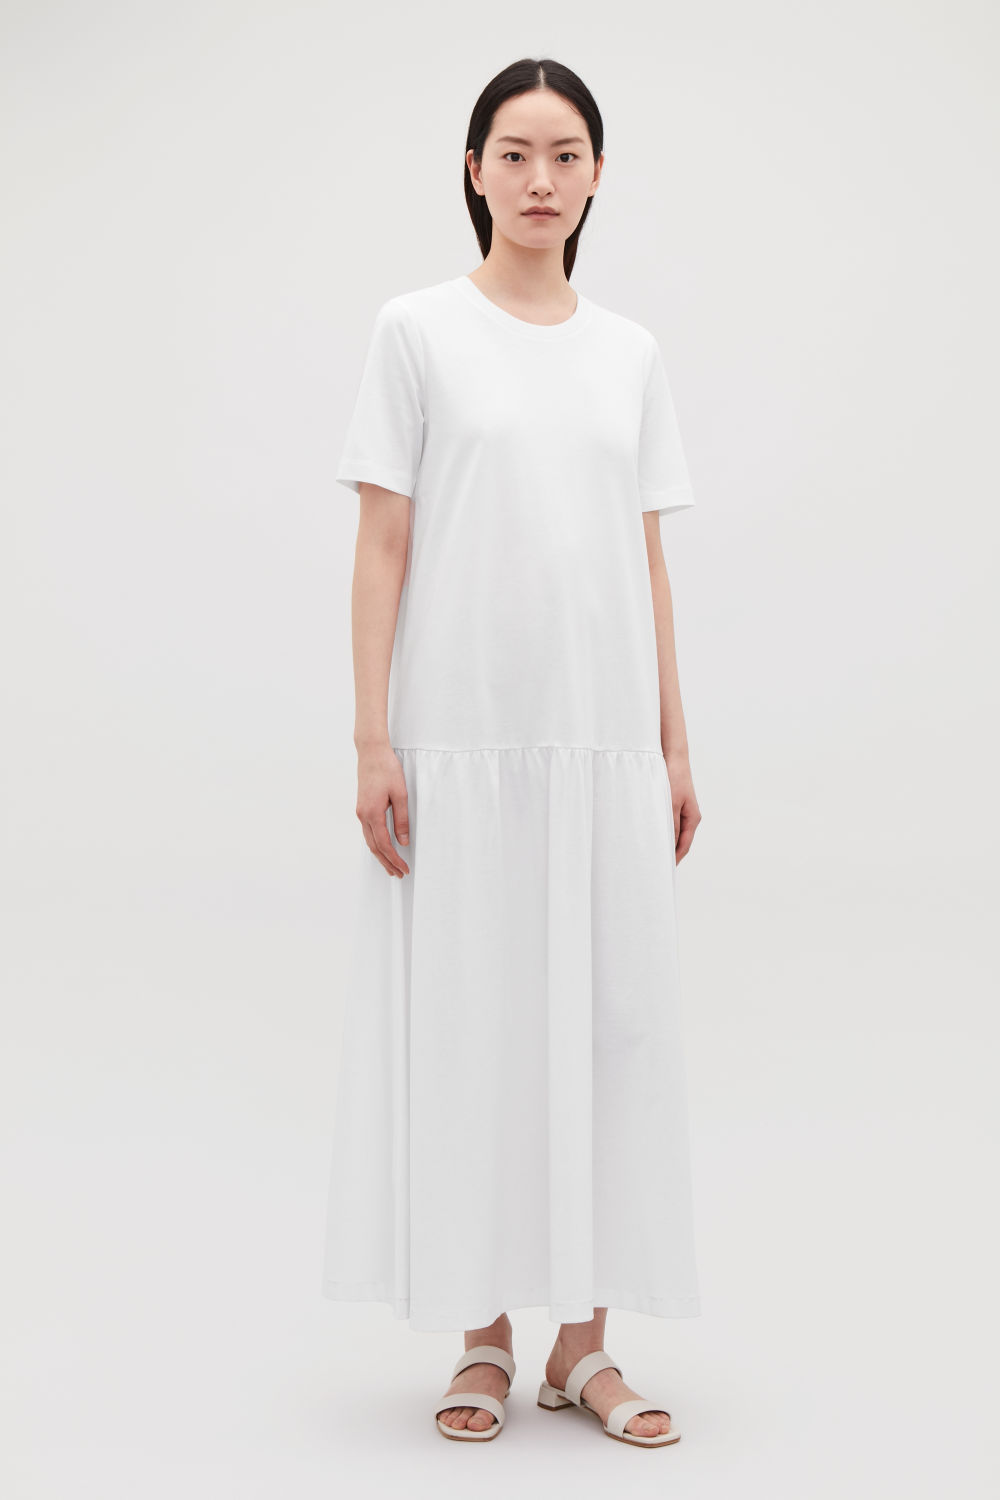 COS LONG DRESS WITH FRILLED HEM,White